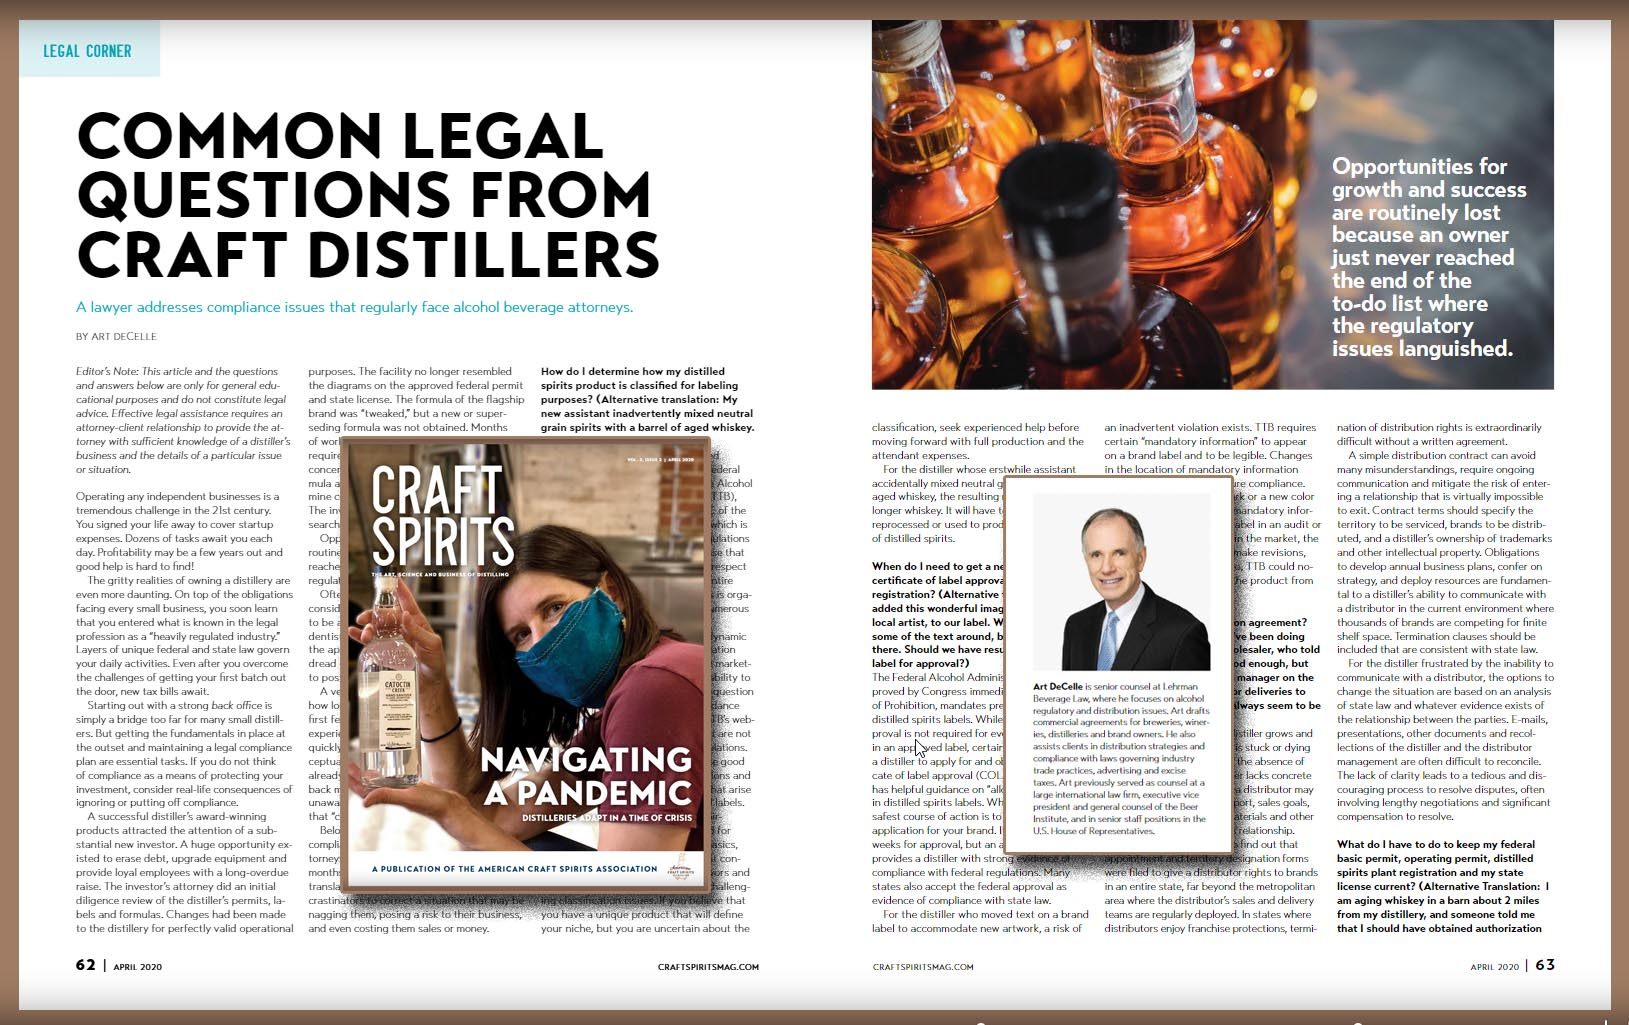 Common Legal Questions from Craft Distillers